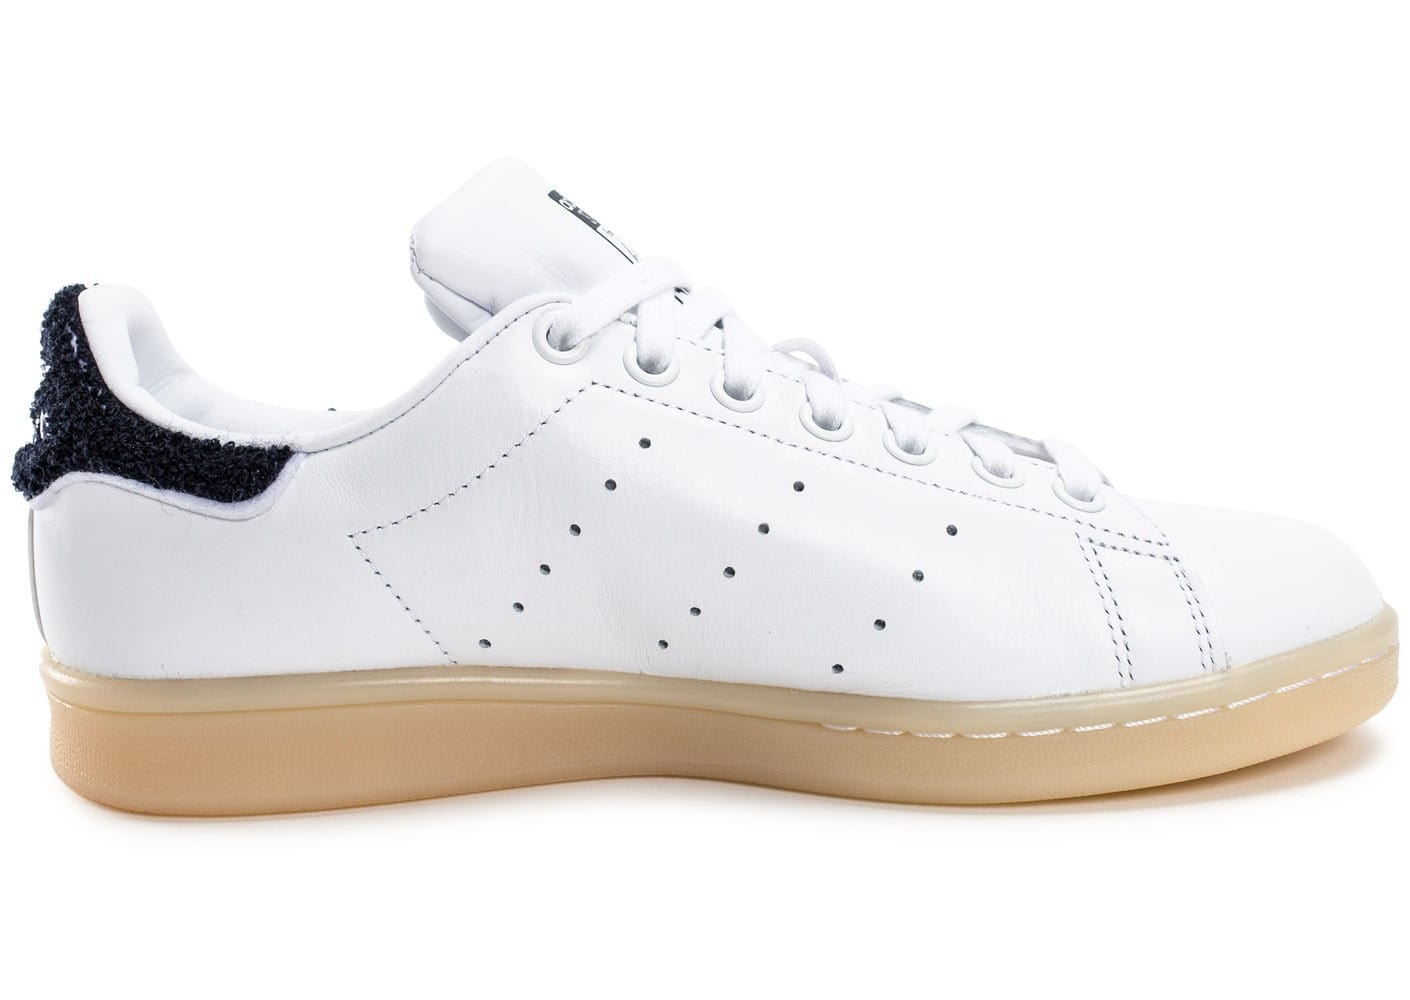 adidas stan smith wool blanche et noire chaussures. Black Bedroom Furniture Sets. Home Design Ideas